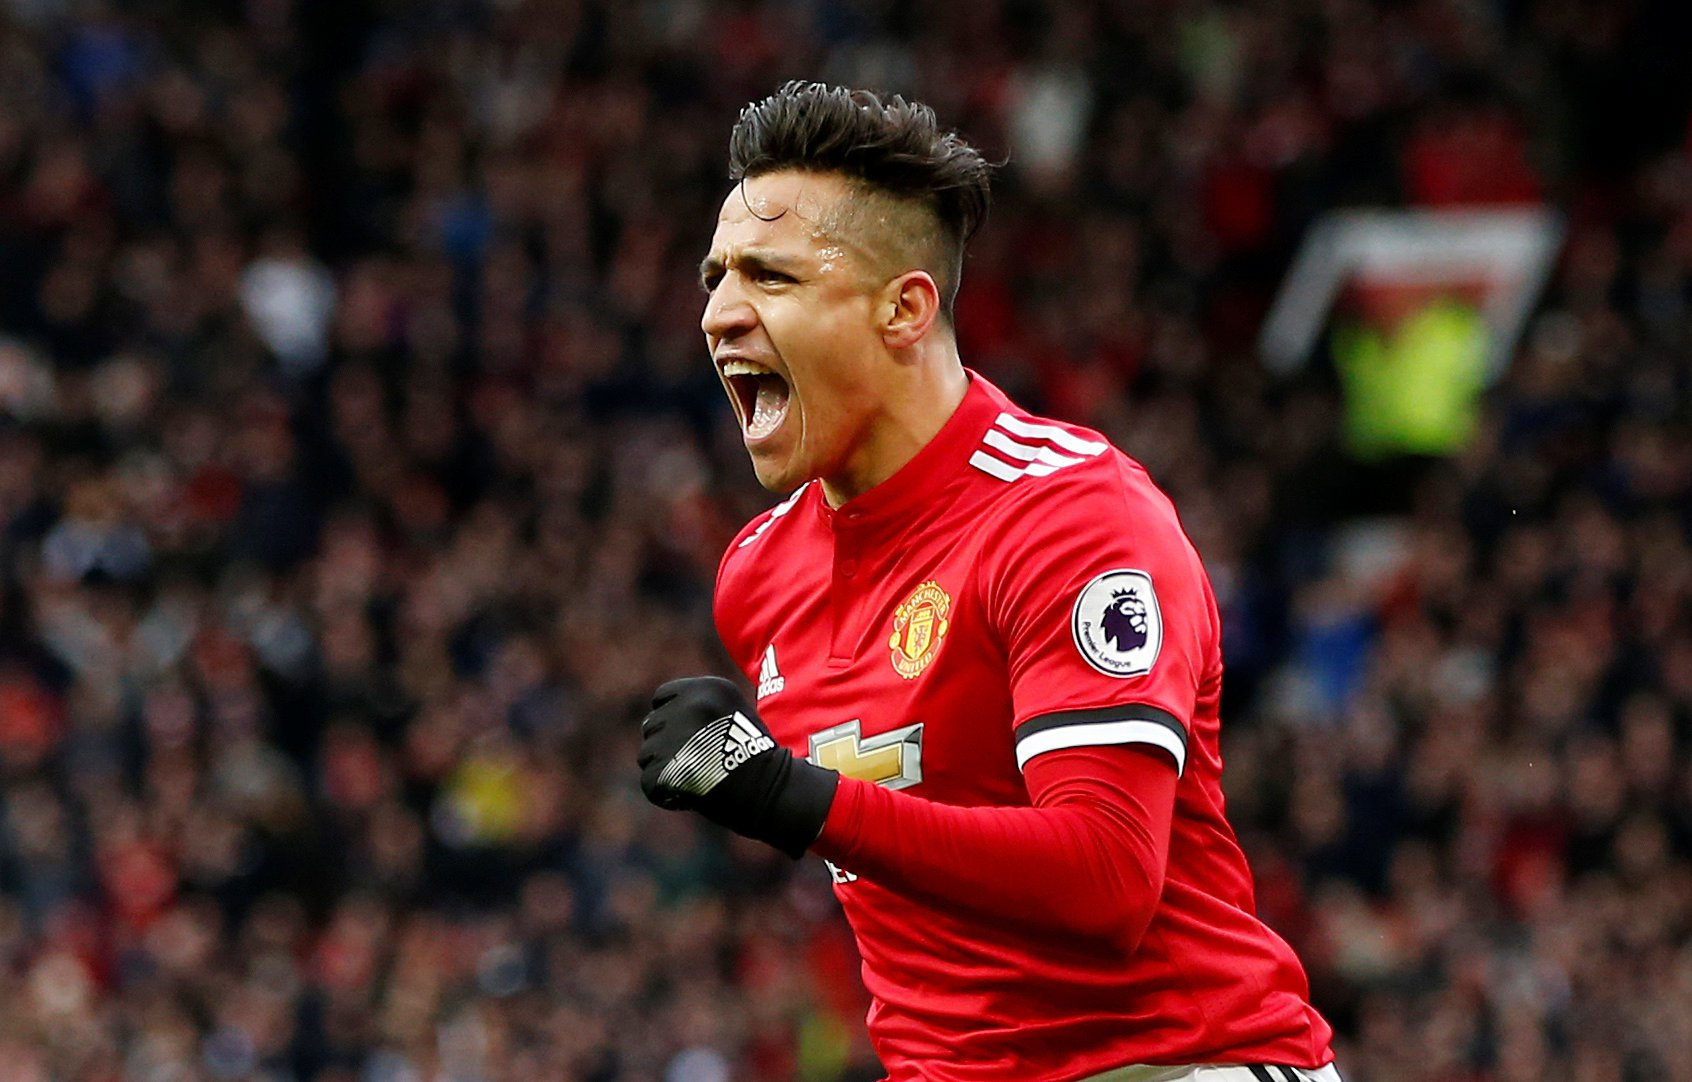 Romelu Lukaku pays tribute to Alexis Sanchez as Manchester United ace ends seven-game goal drought